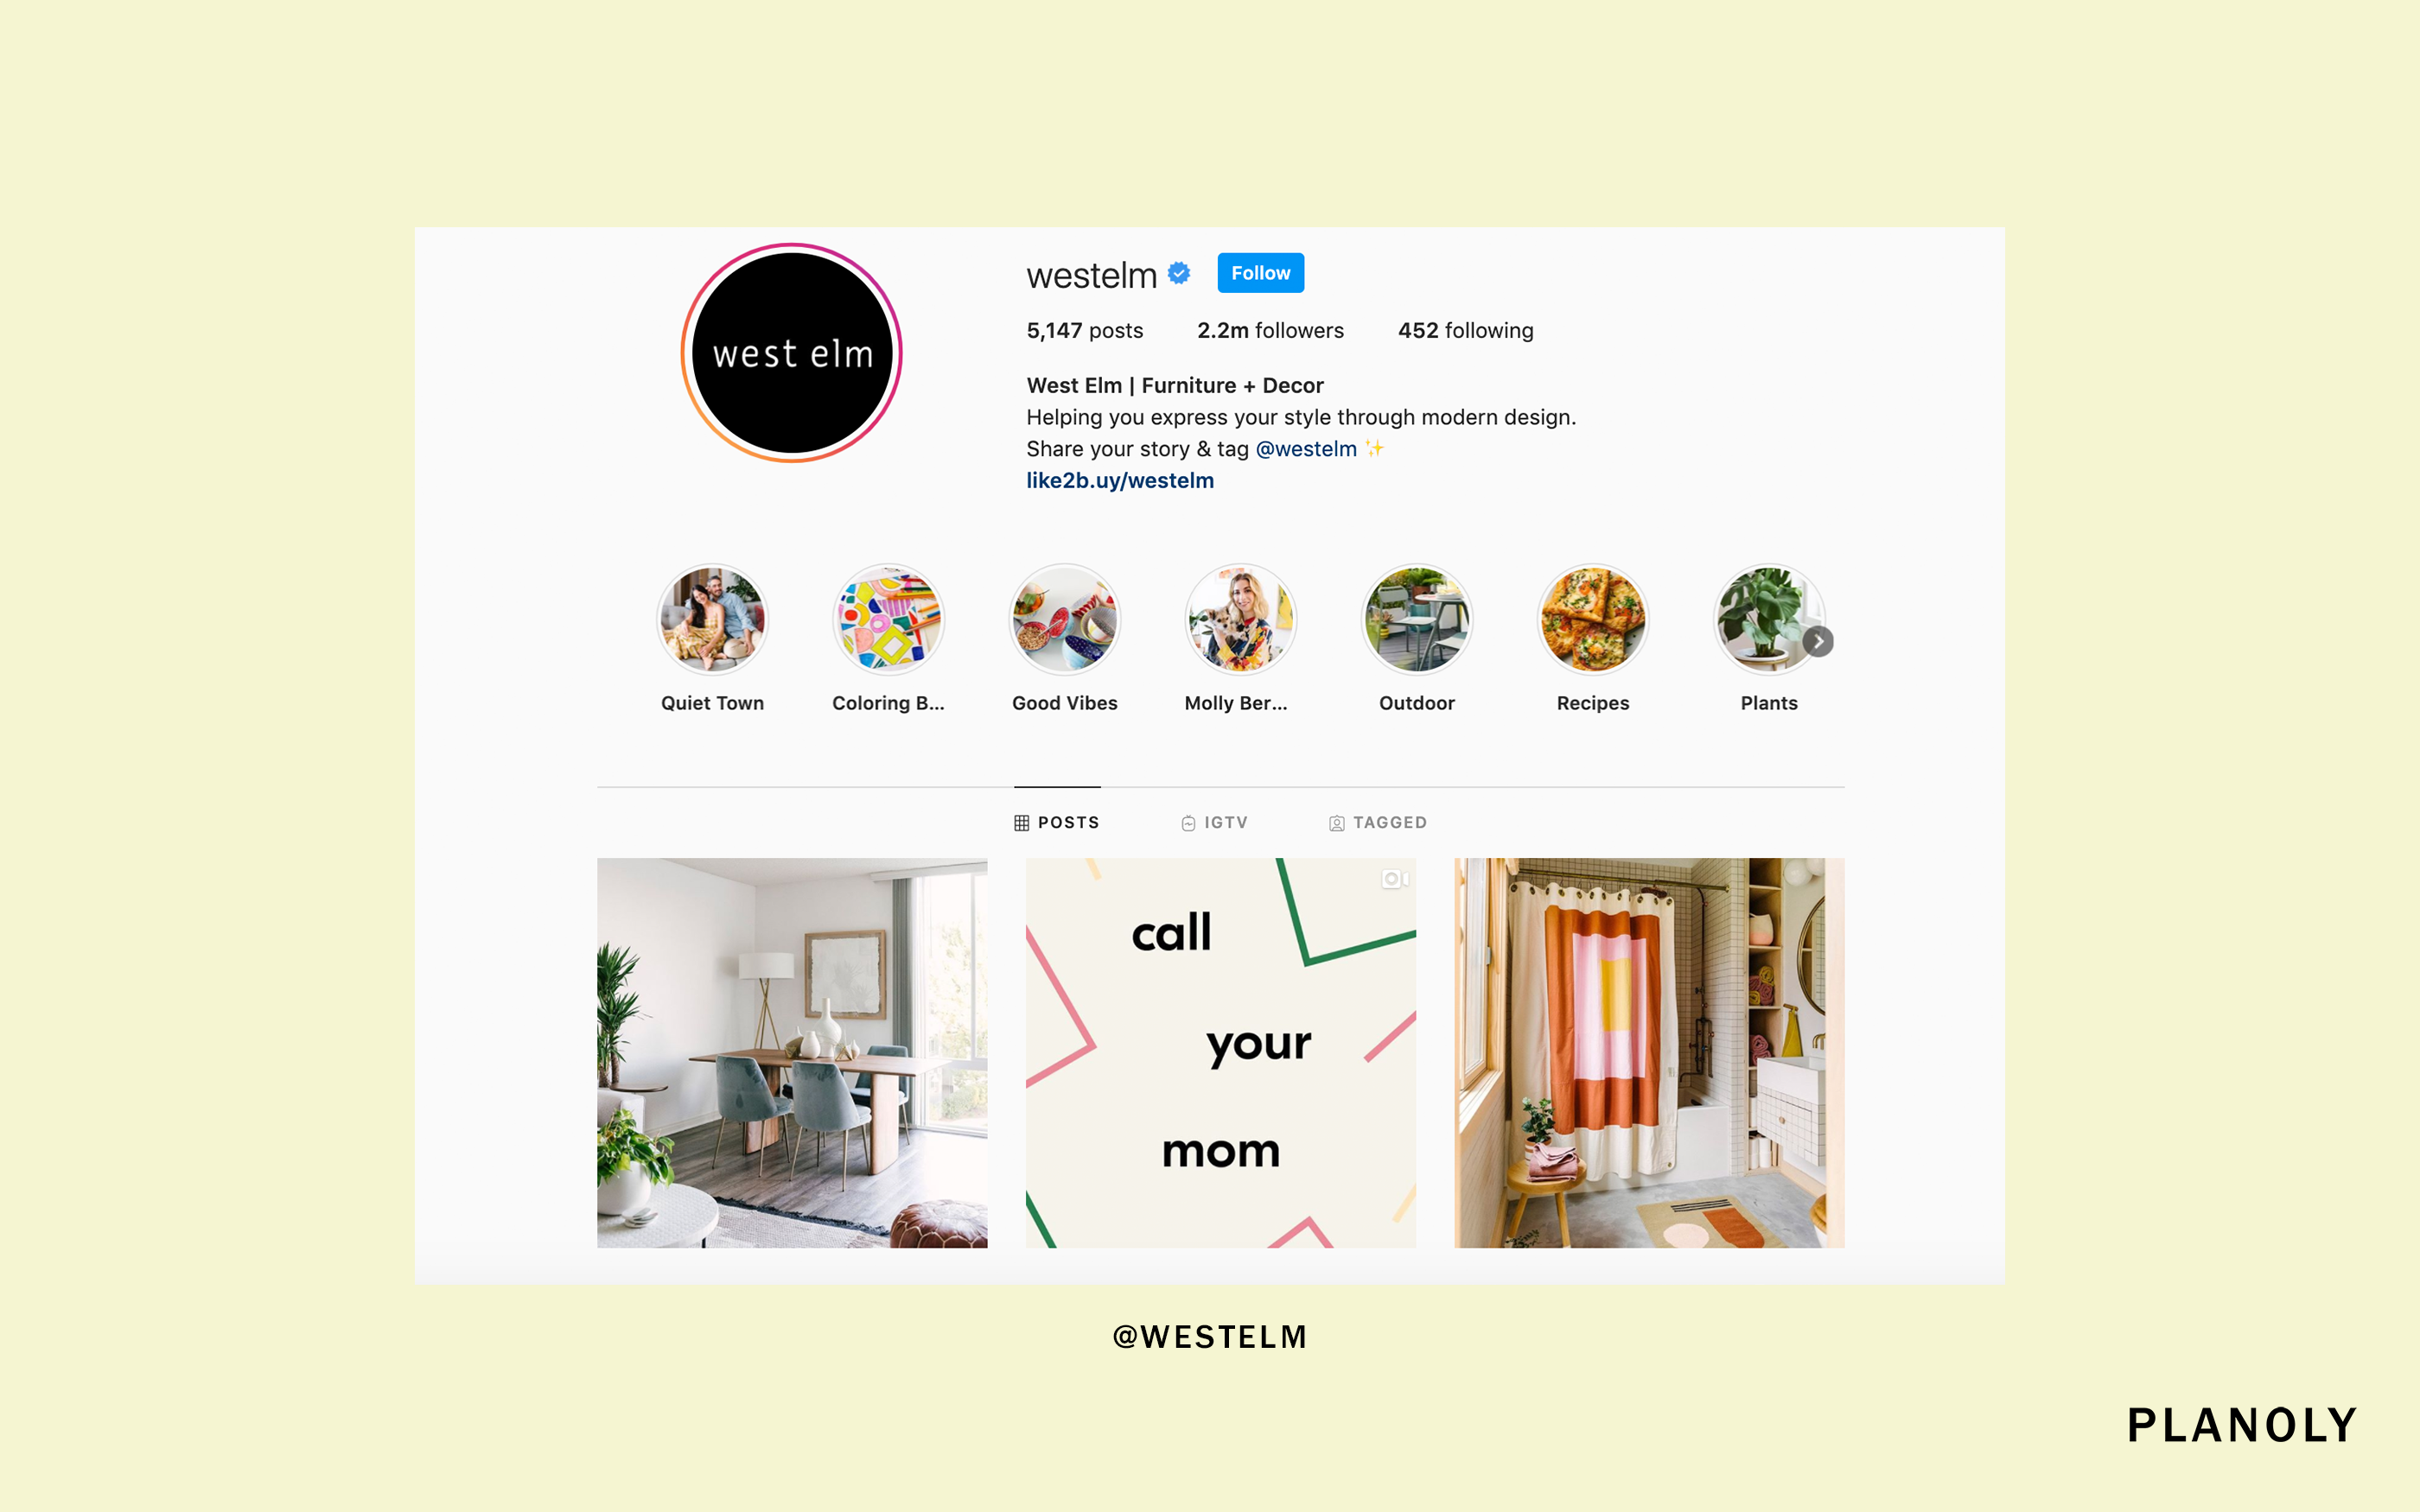 PLANOLY - Blog Post - How to Create Instagram Stories Highlights That Serve Your Customers - Image 1